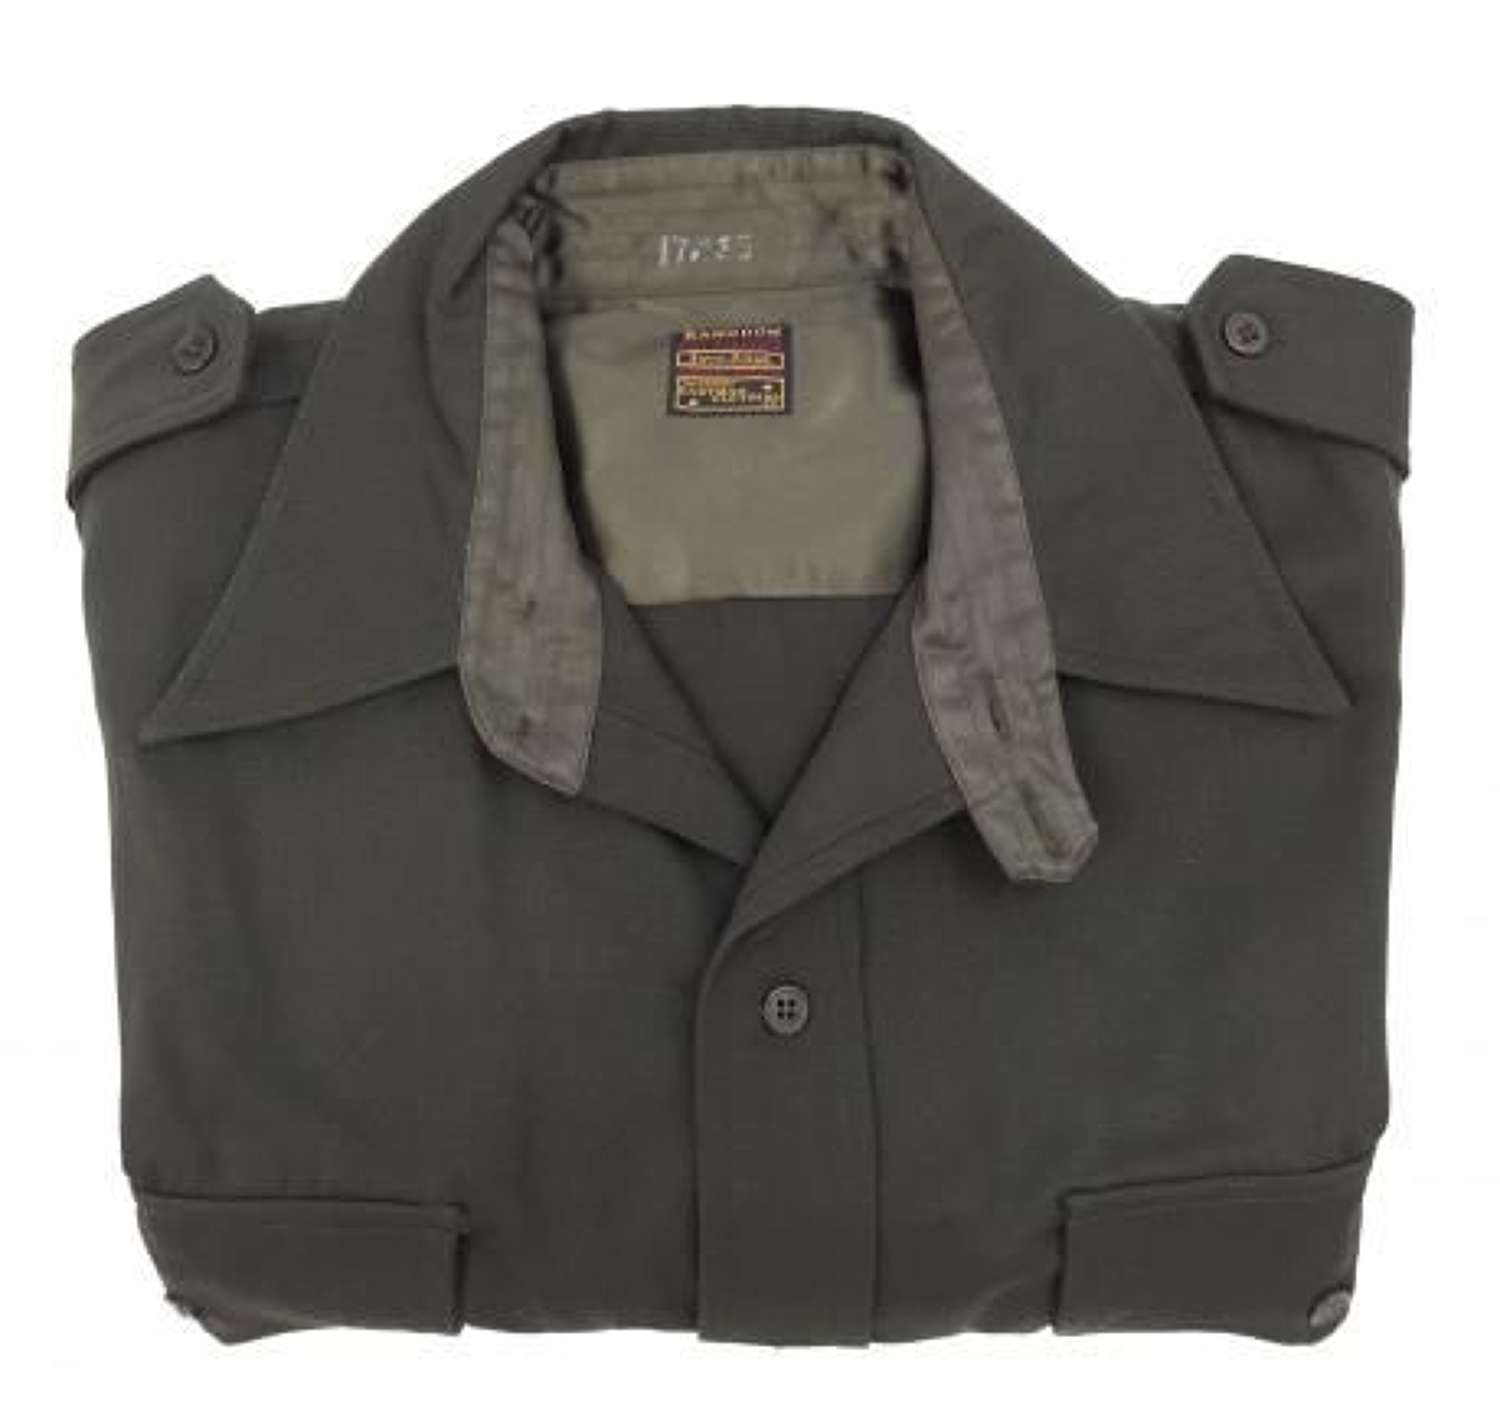 US Army Officers Chocolate shirt by 'Eastman'